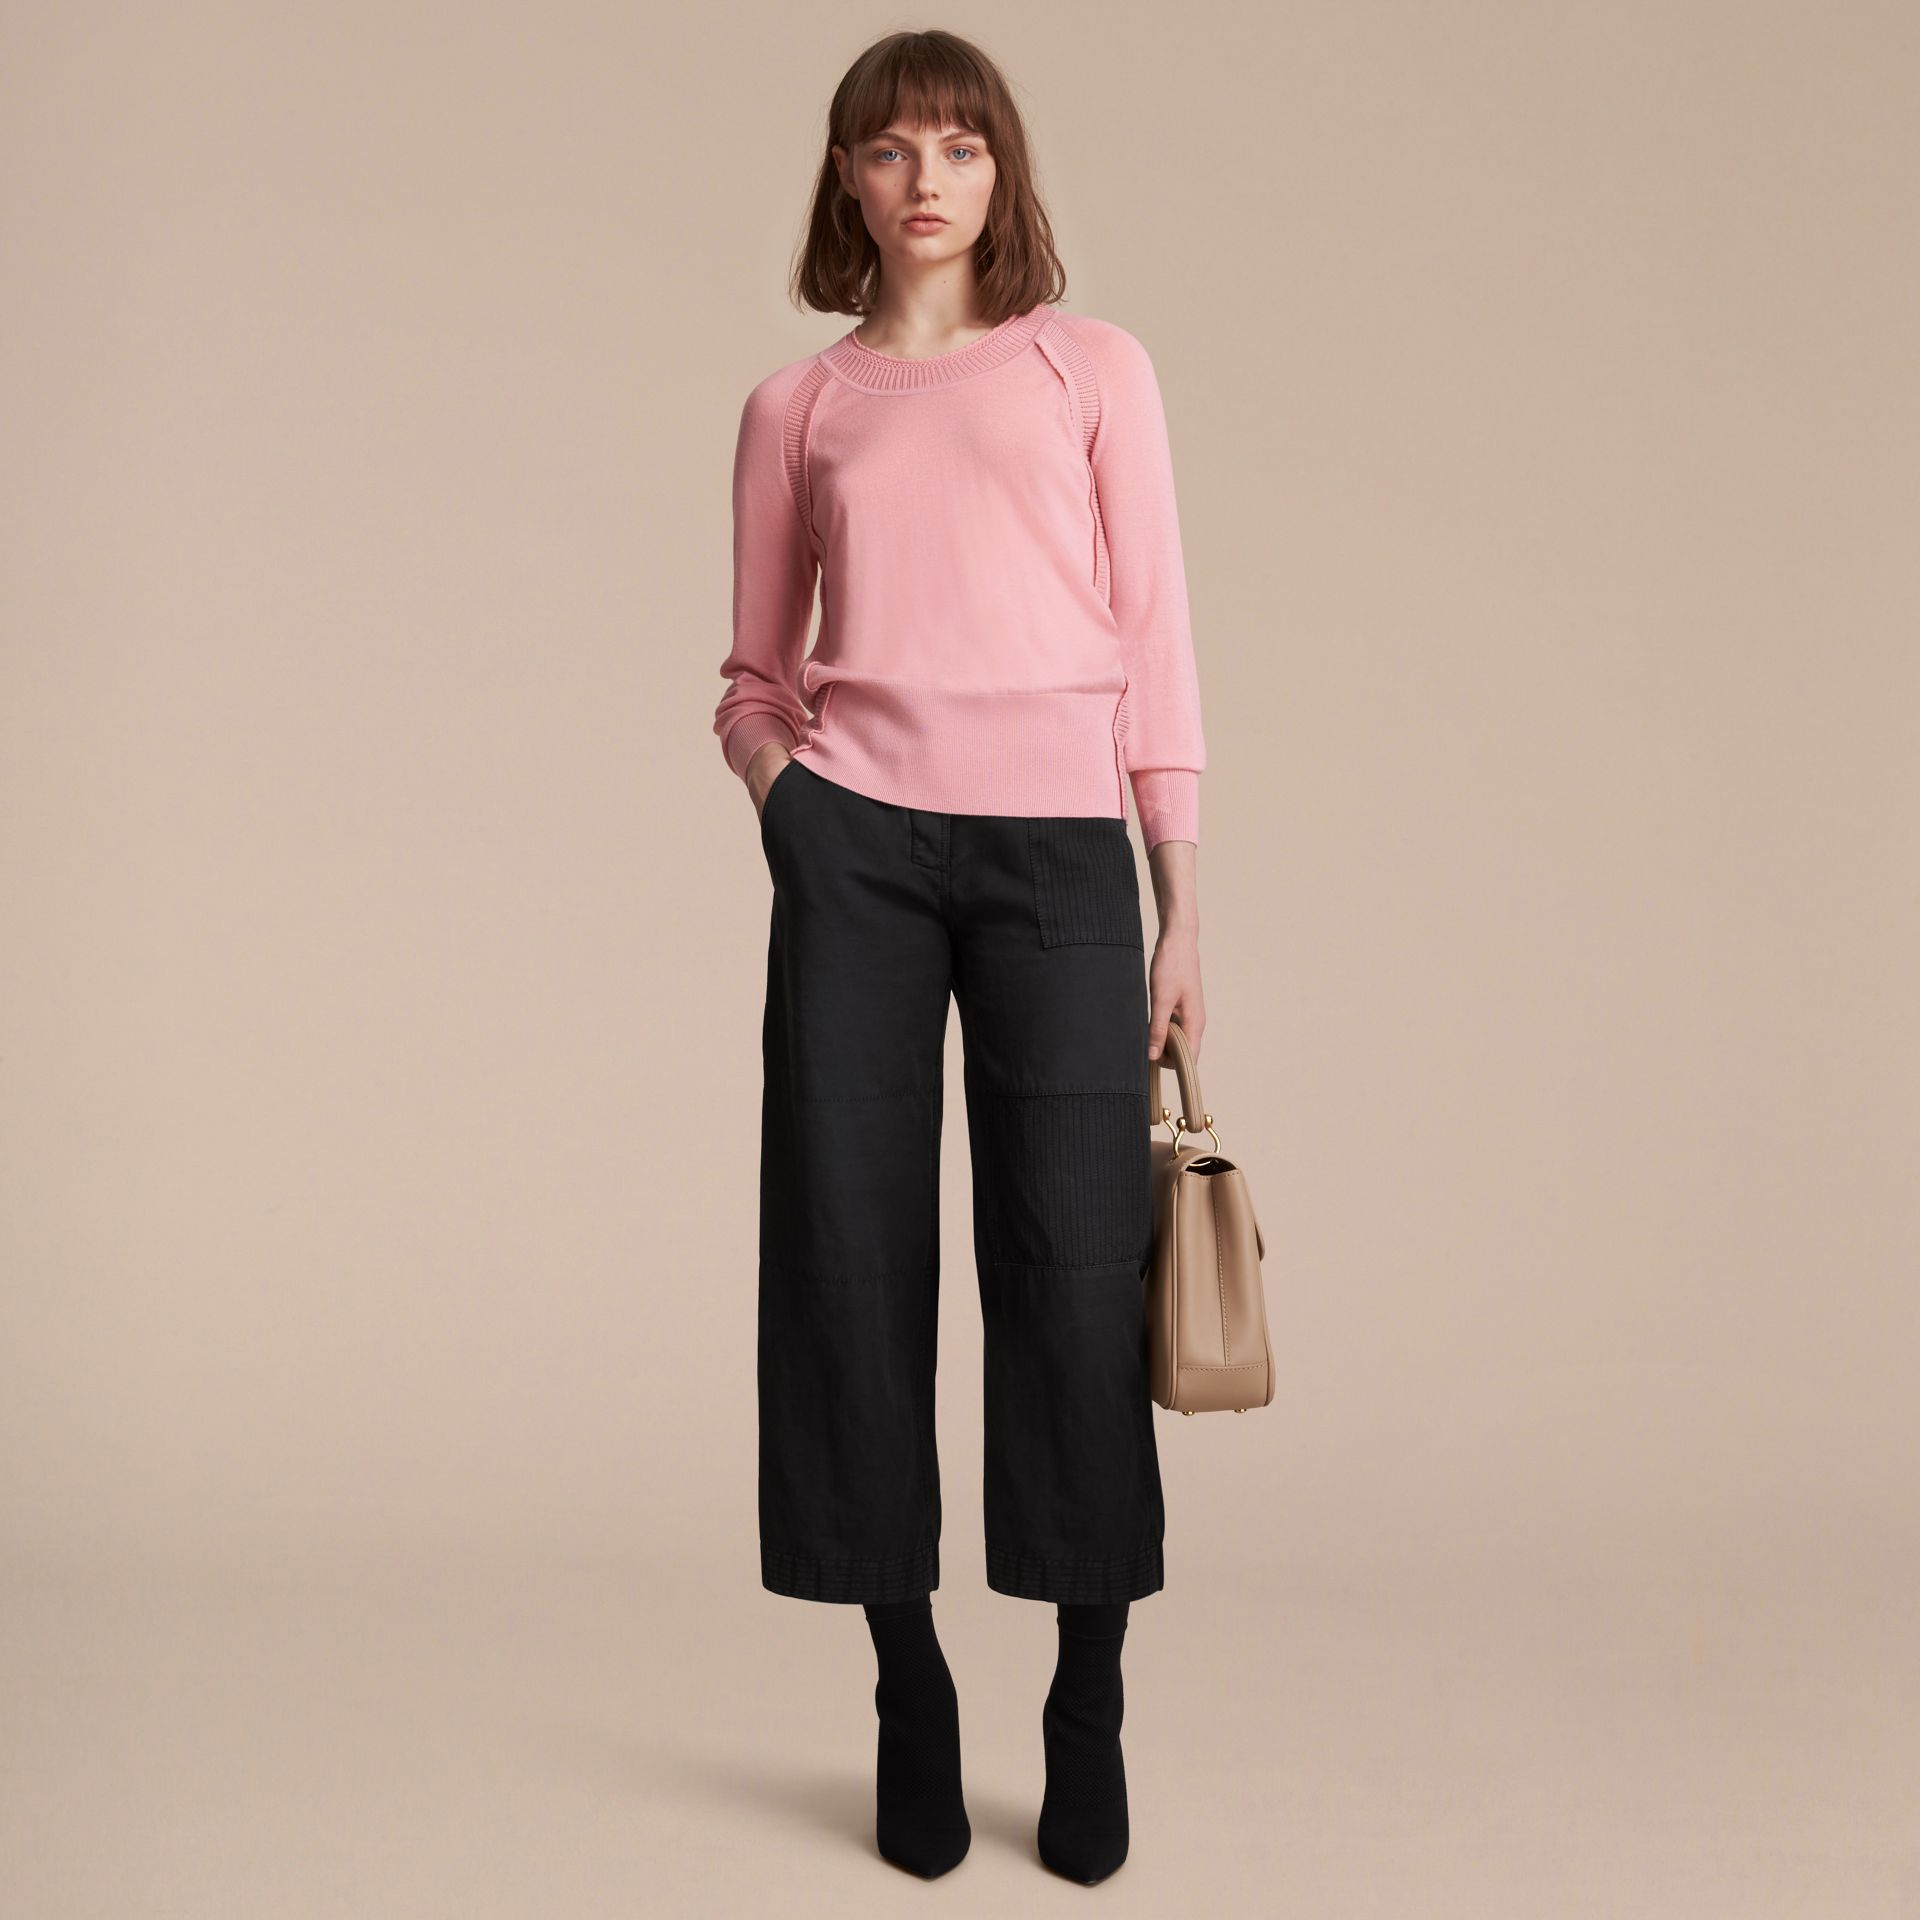 Open-knit Detail Cashmere Crew Neck Sweater in Apricot Pink - Women | Burberry Canada - gallery image 6